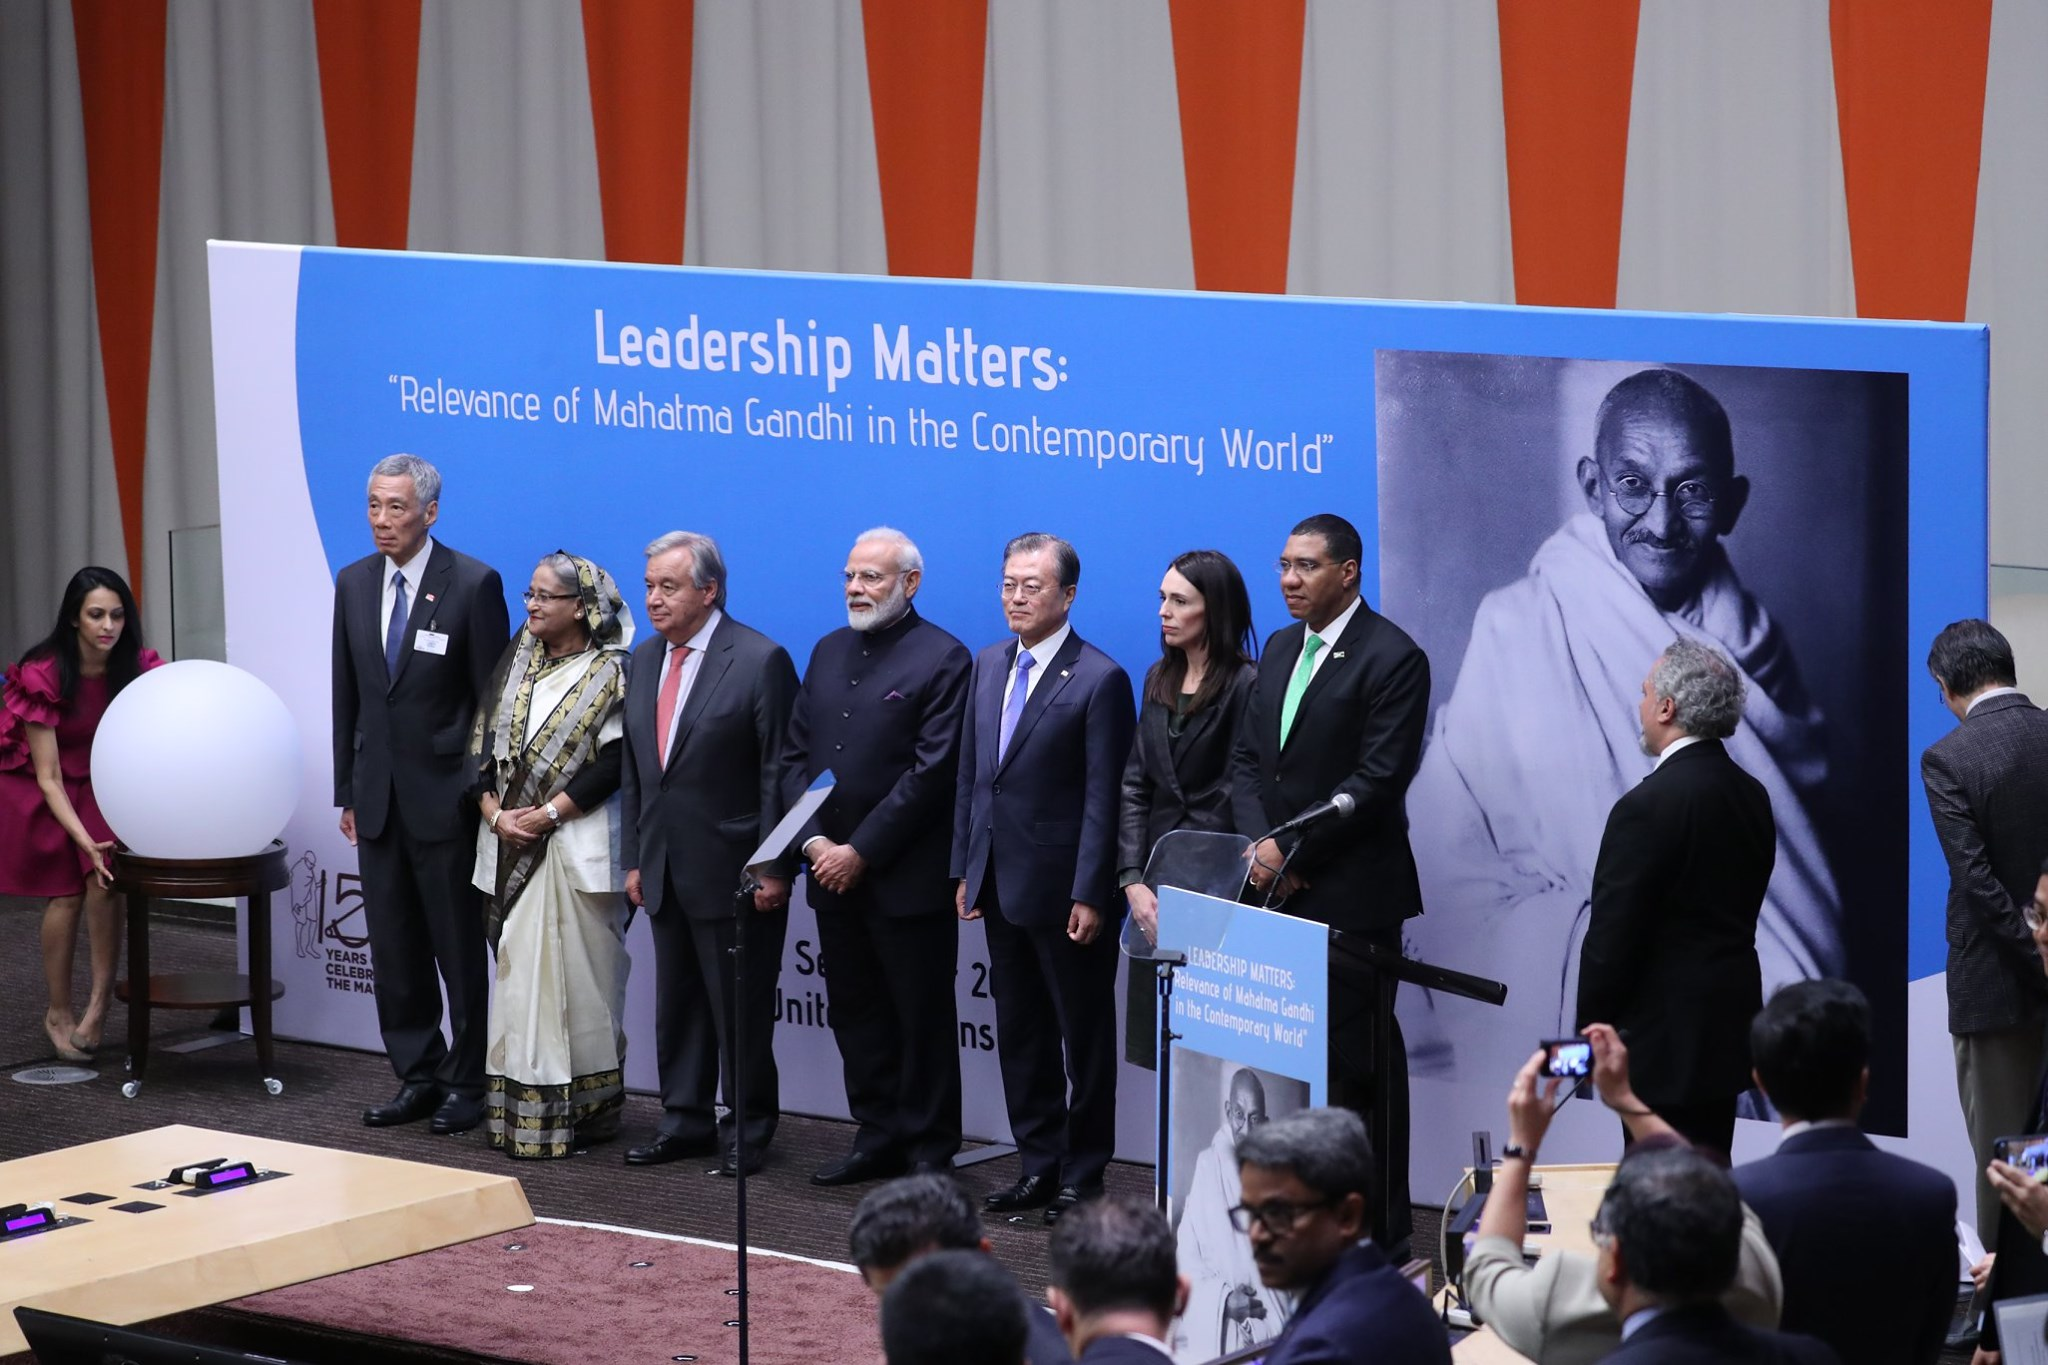 (From left to right) Singapore PM Lee Hsien Loong, Bangladesh PM Sheikh Hasina, UN Secretary General António Guterres, India PM Narendra Modi, South Korean President Moon Jae-in, New Zealand PM Jacinda Ardern and Jamaica PM Andrew Holness delivered speeches at an event to commemorate the 150th birth anniversary of Mahatma Gandhi. Photo courtesy: MCI Betty Chua